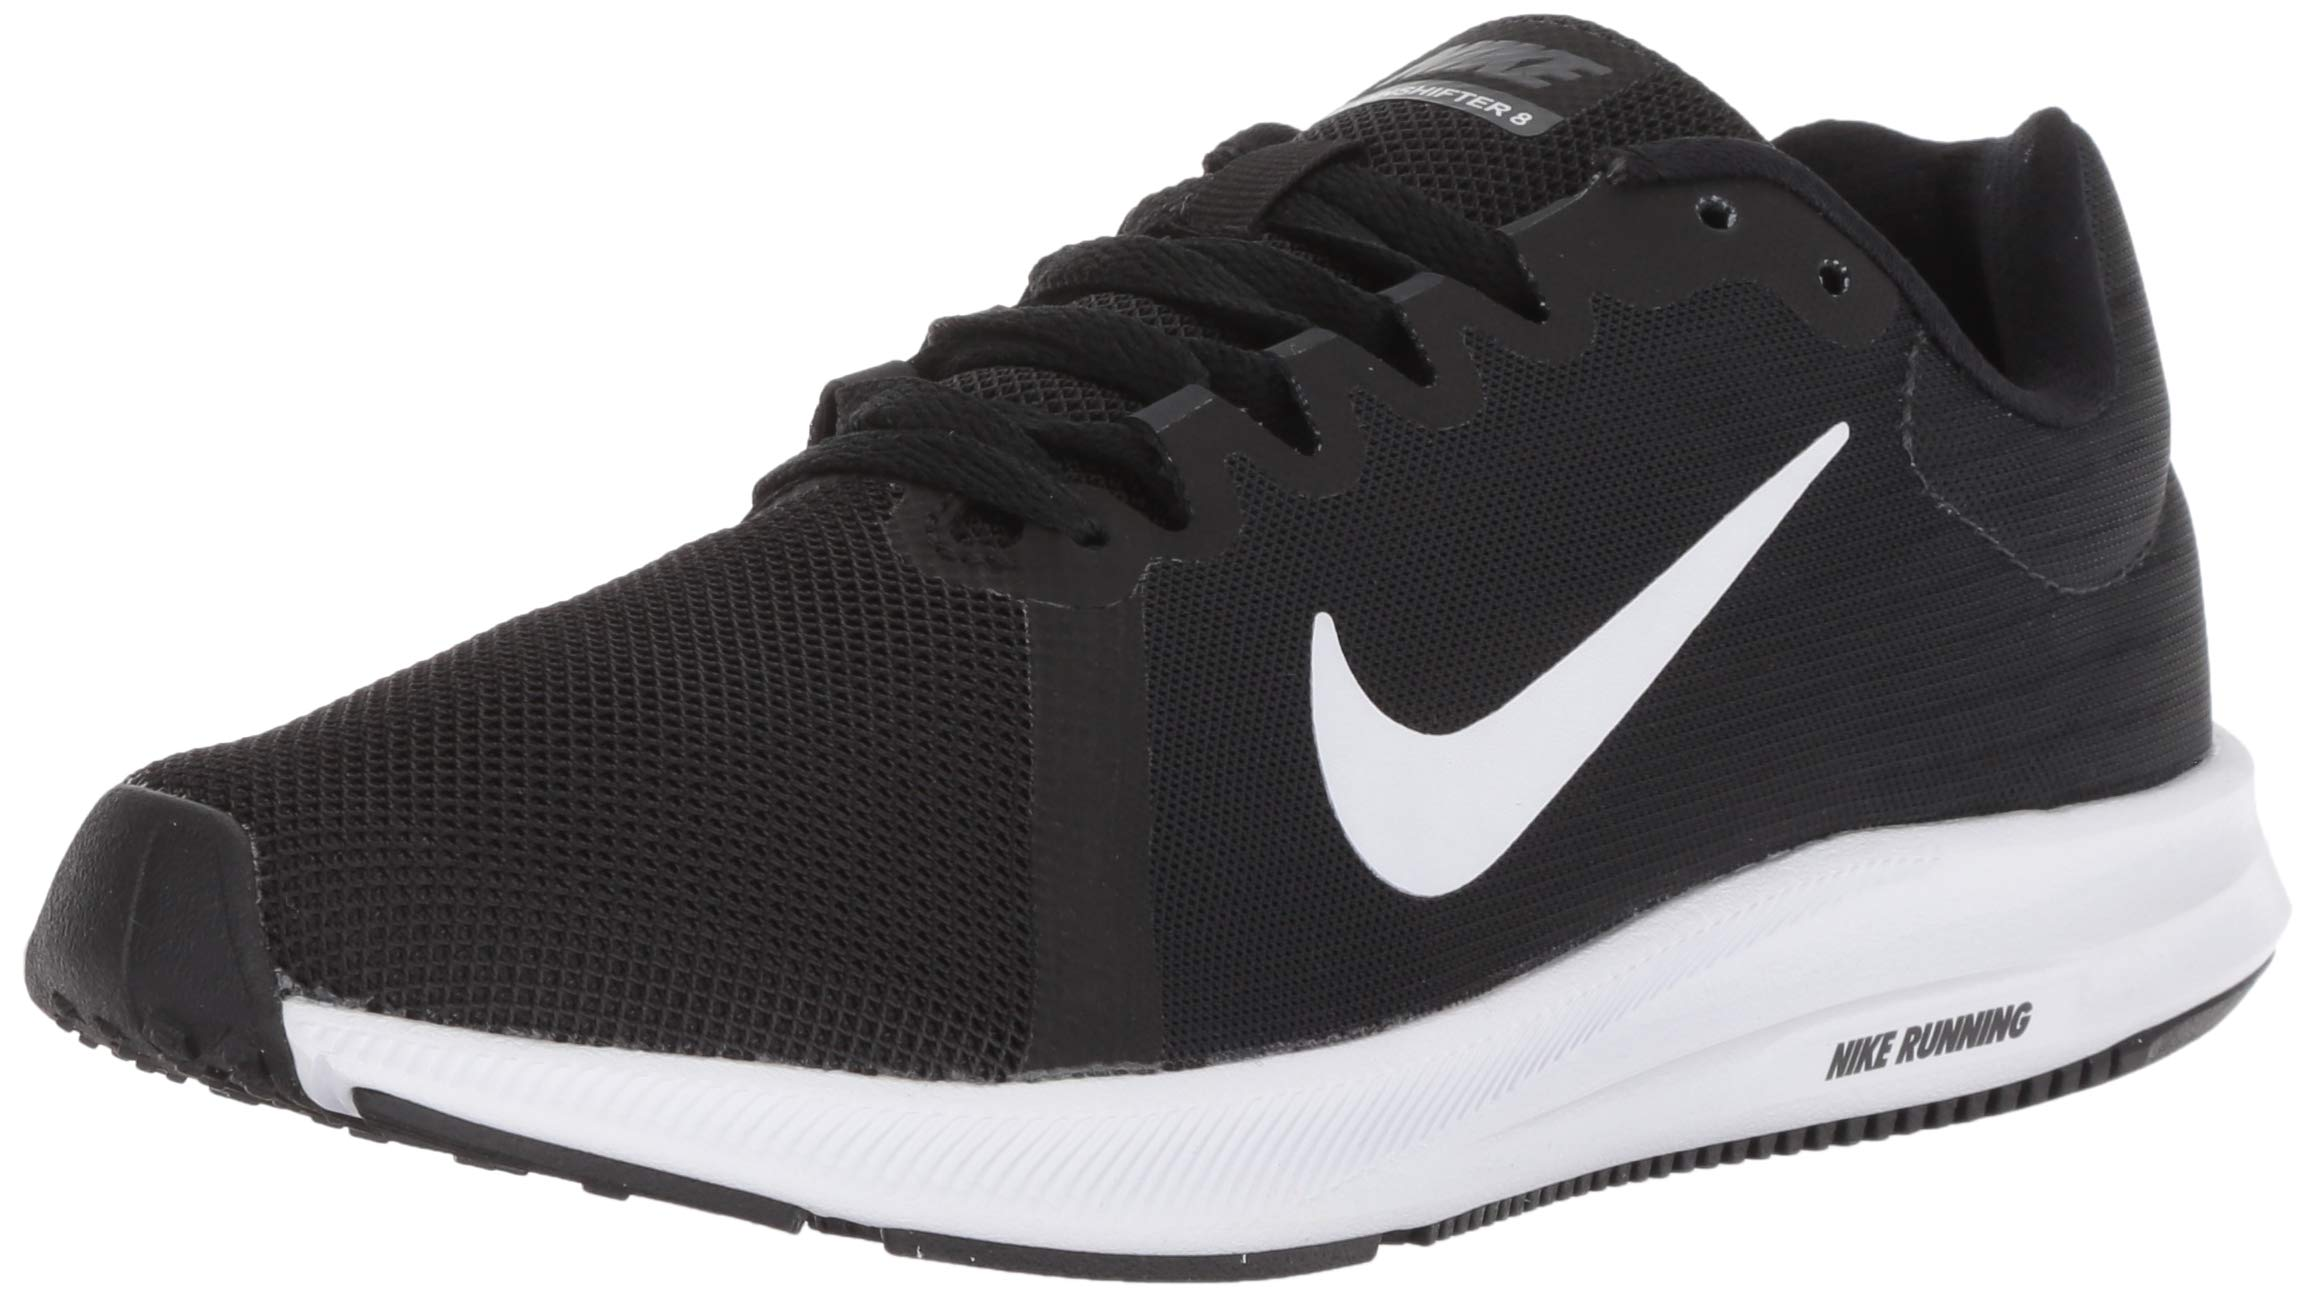 on sale e3502 5a0e9 Nike Downshifter 8 Chaussures de Running Homme product image